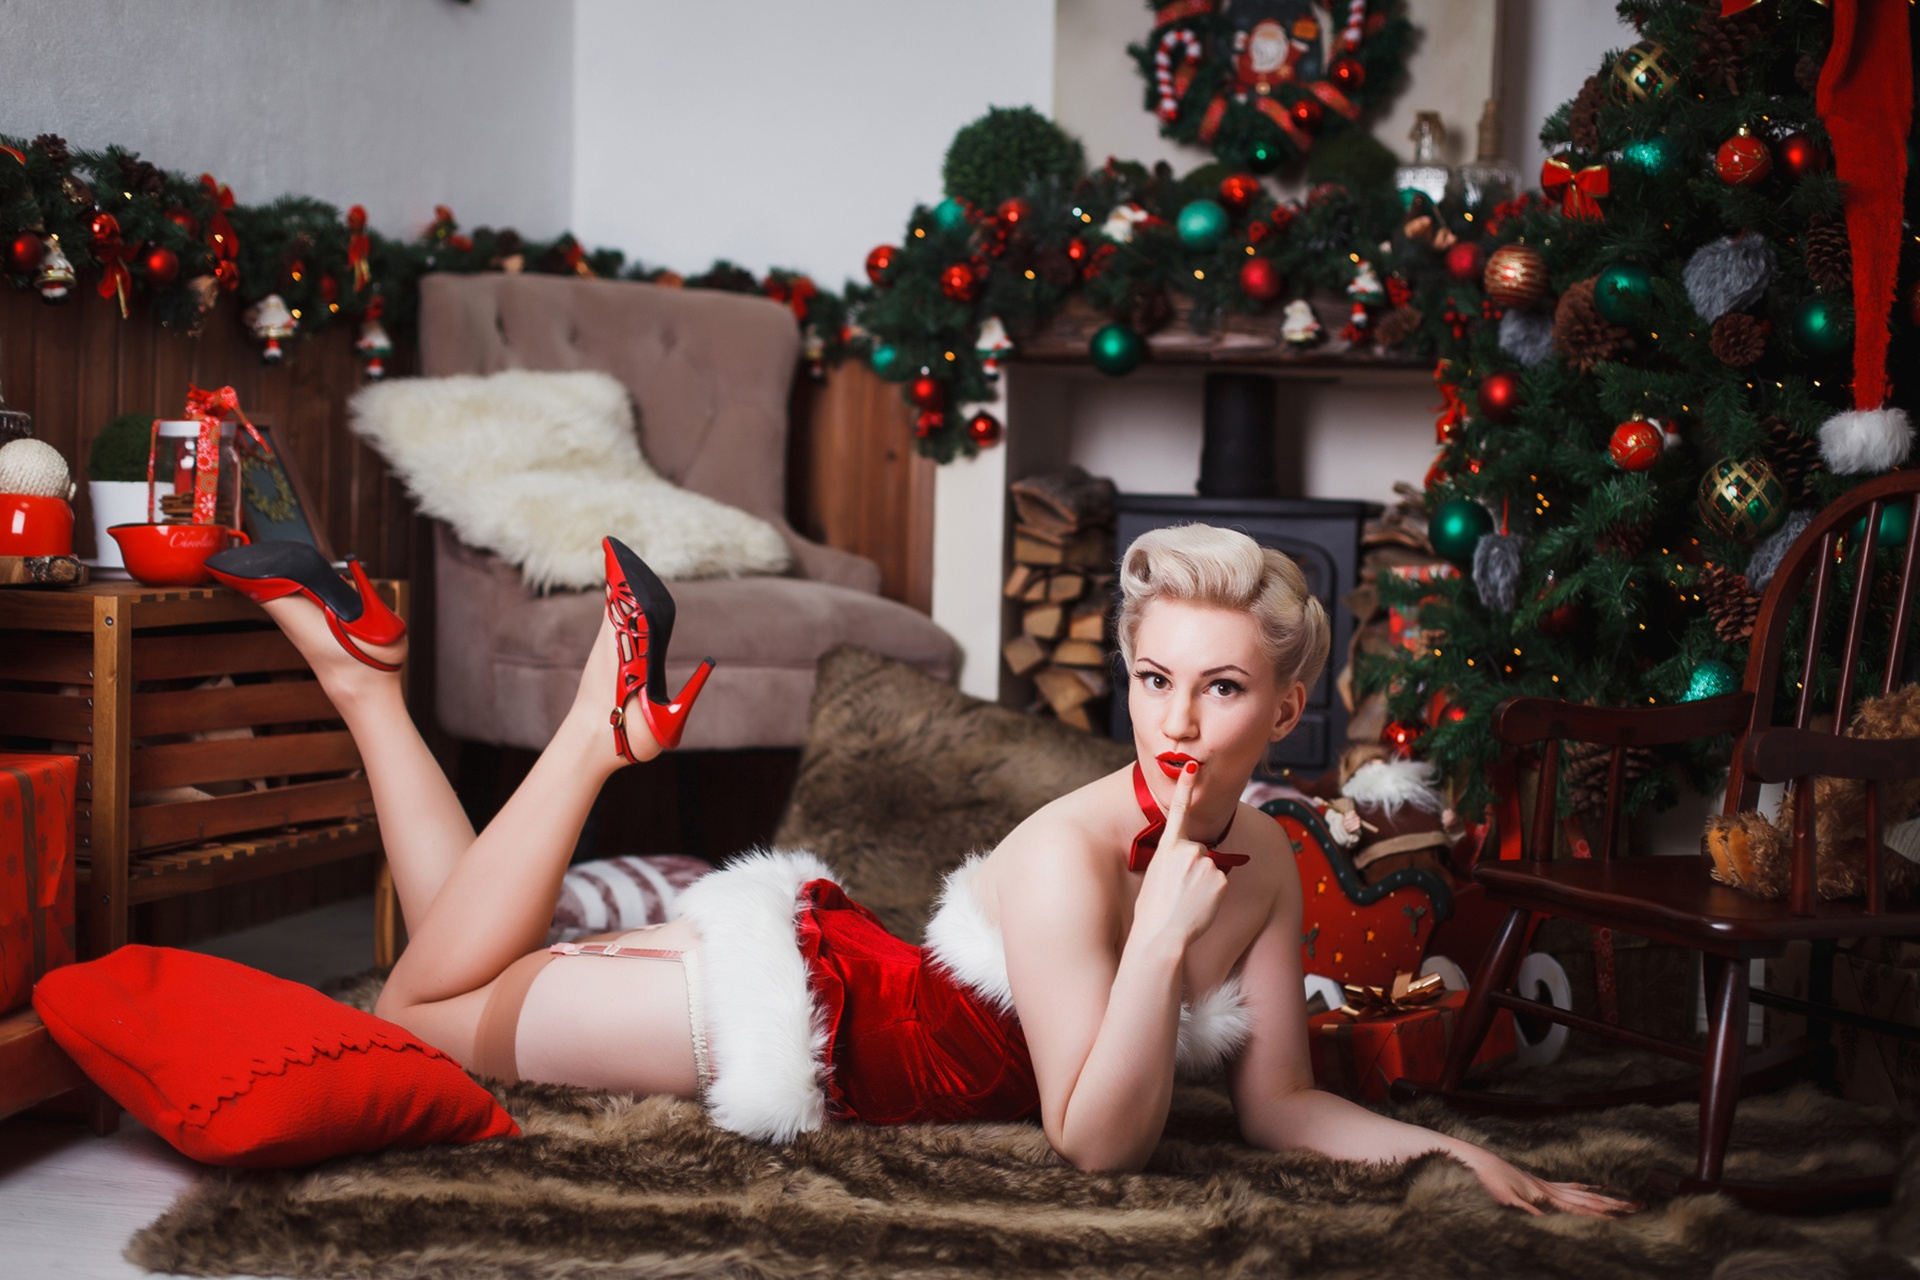 Merry christmas you sexy bitch